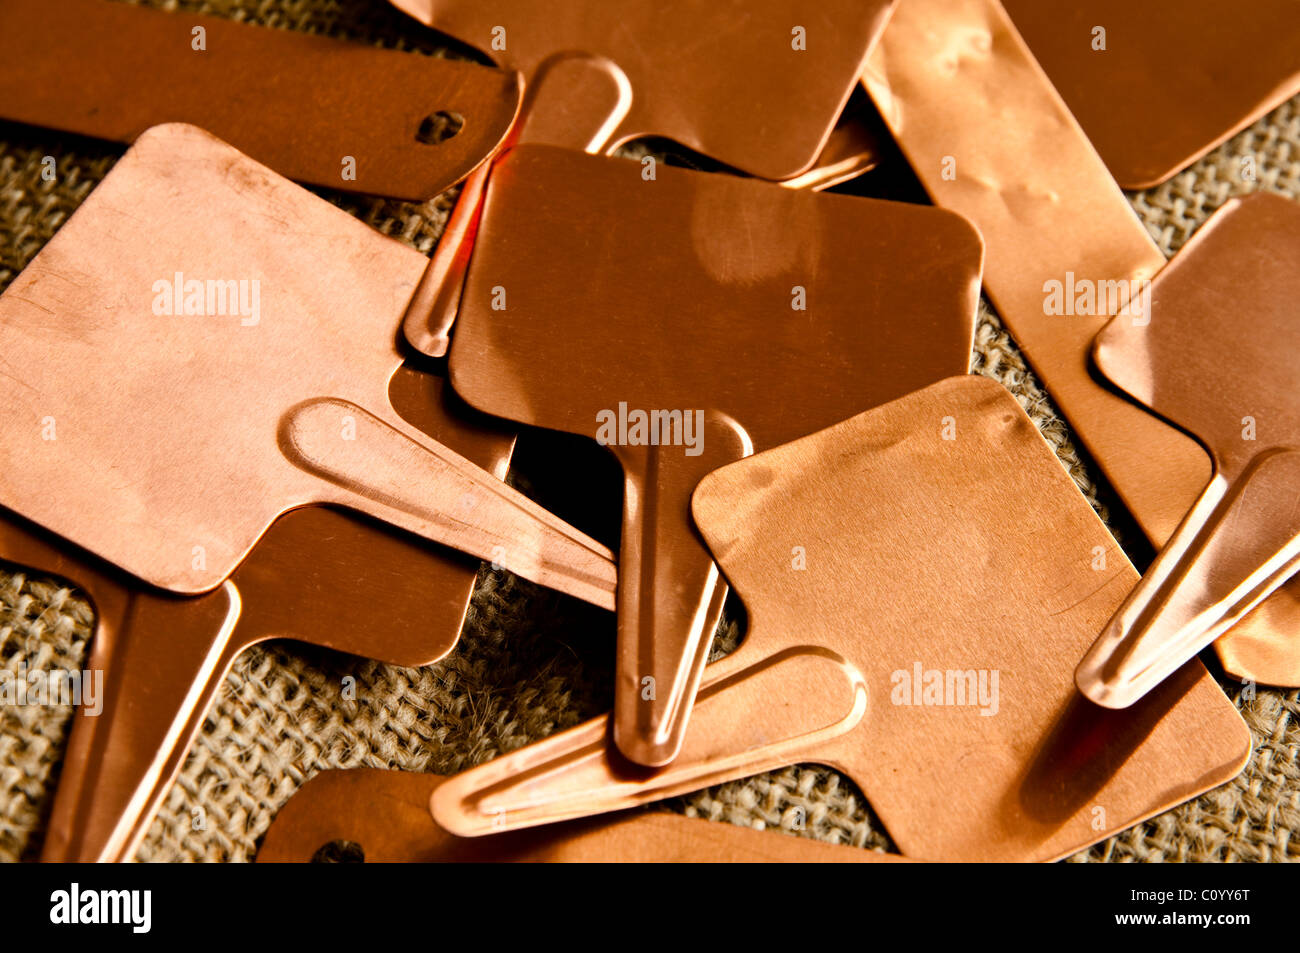 Plant Label Tags Stock Photos & Plant Label Tags Stock Images - Alamy